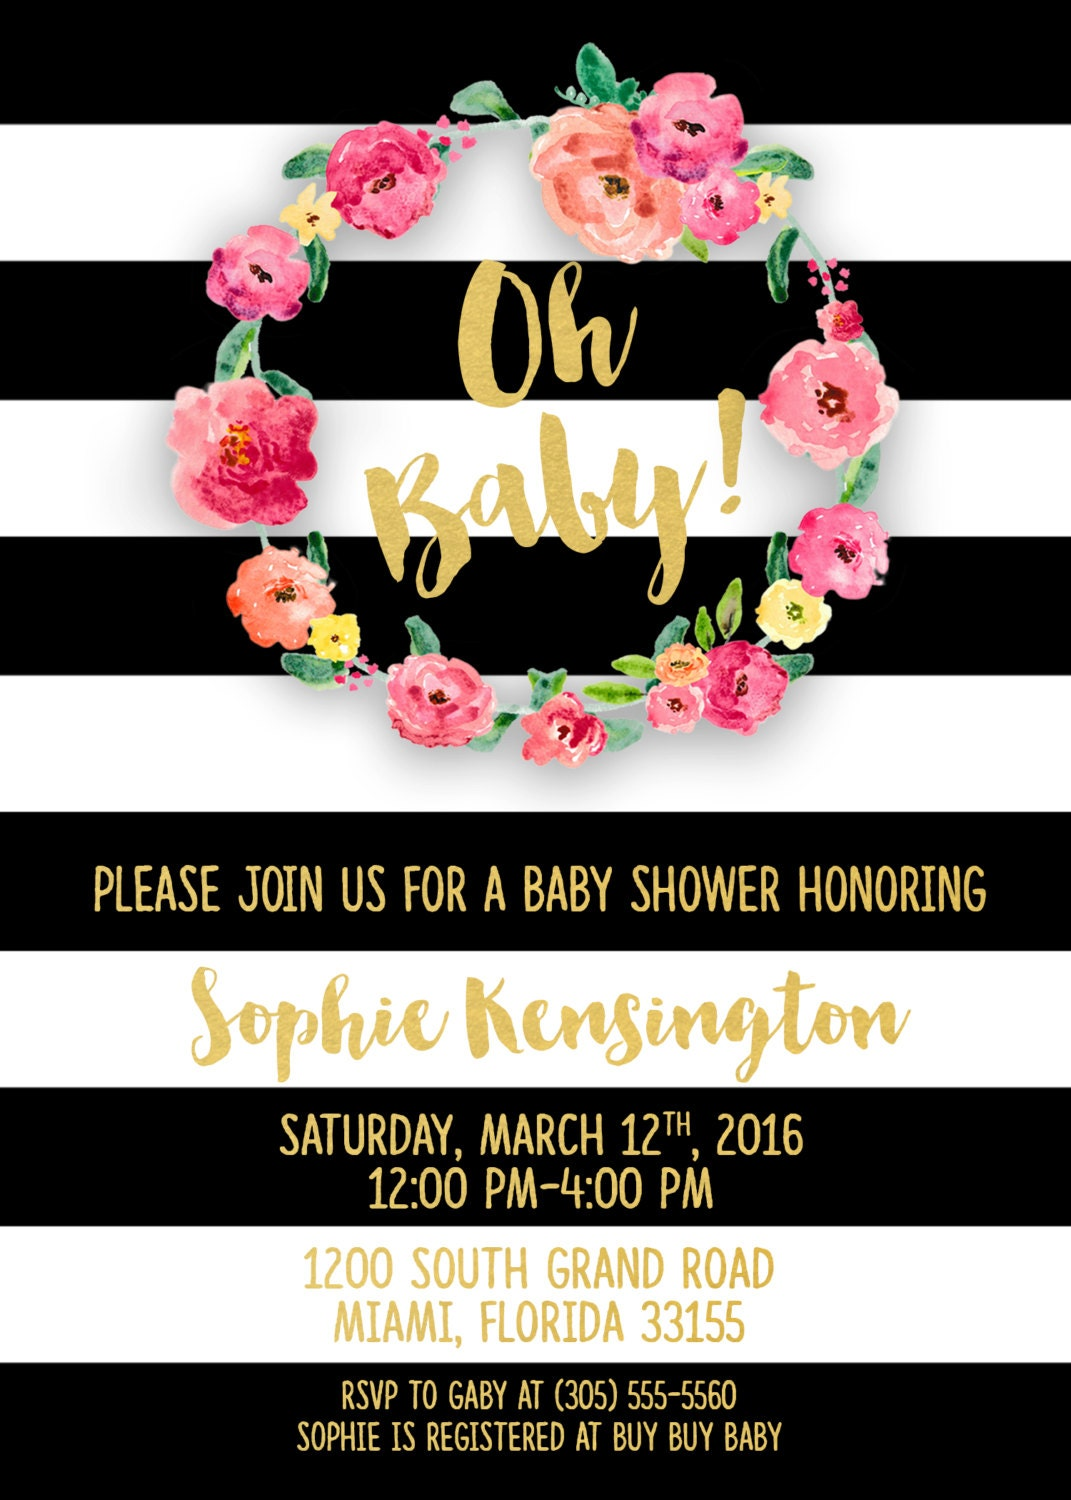 Baby shower invitation girl black and white baby shower baby shower invitation girl black and white baby shower invitation oh baby invitation pink gold baby shower invite printable invitation filmwisefo Images